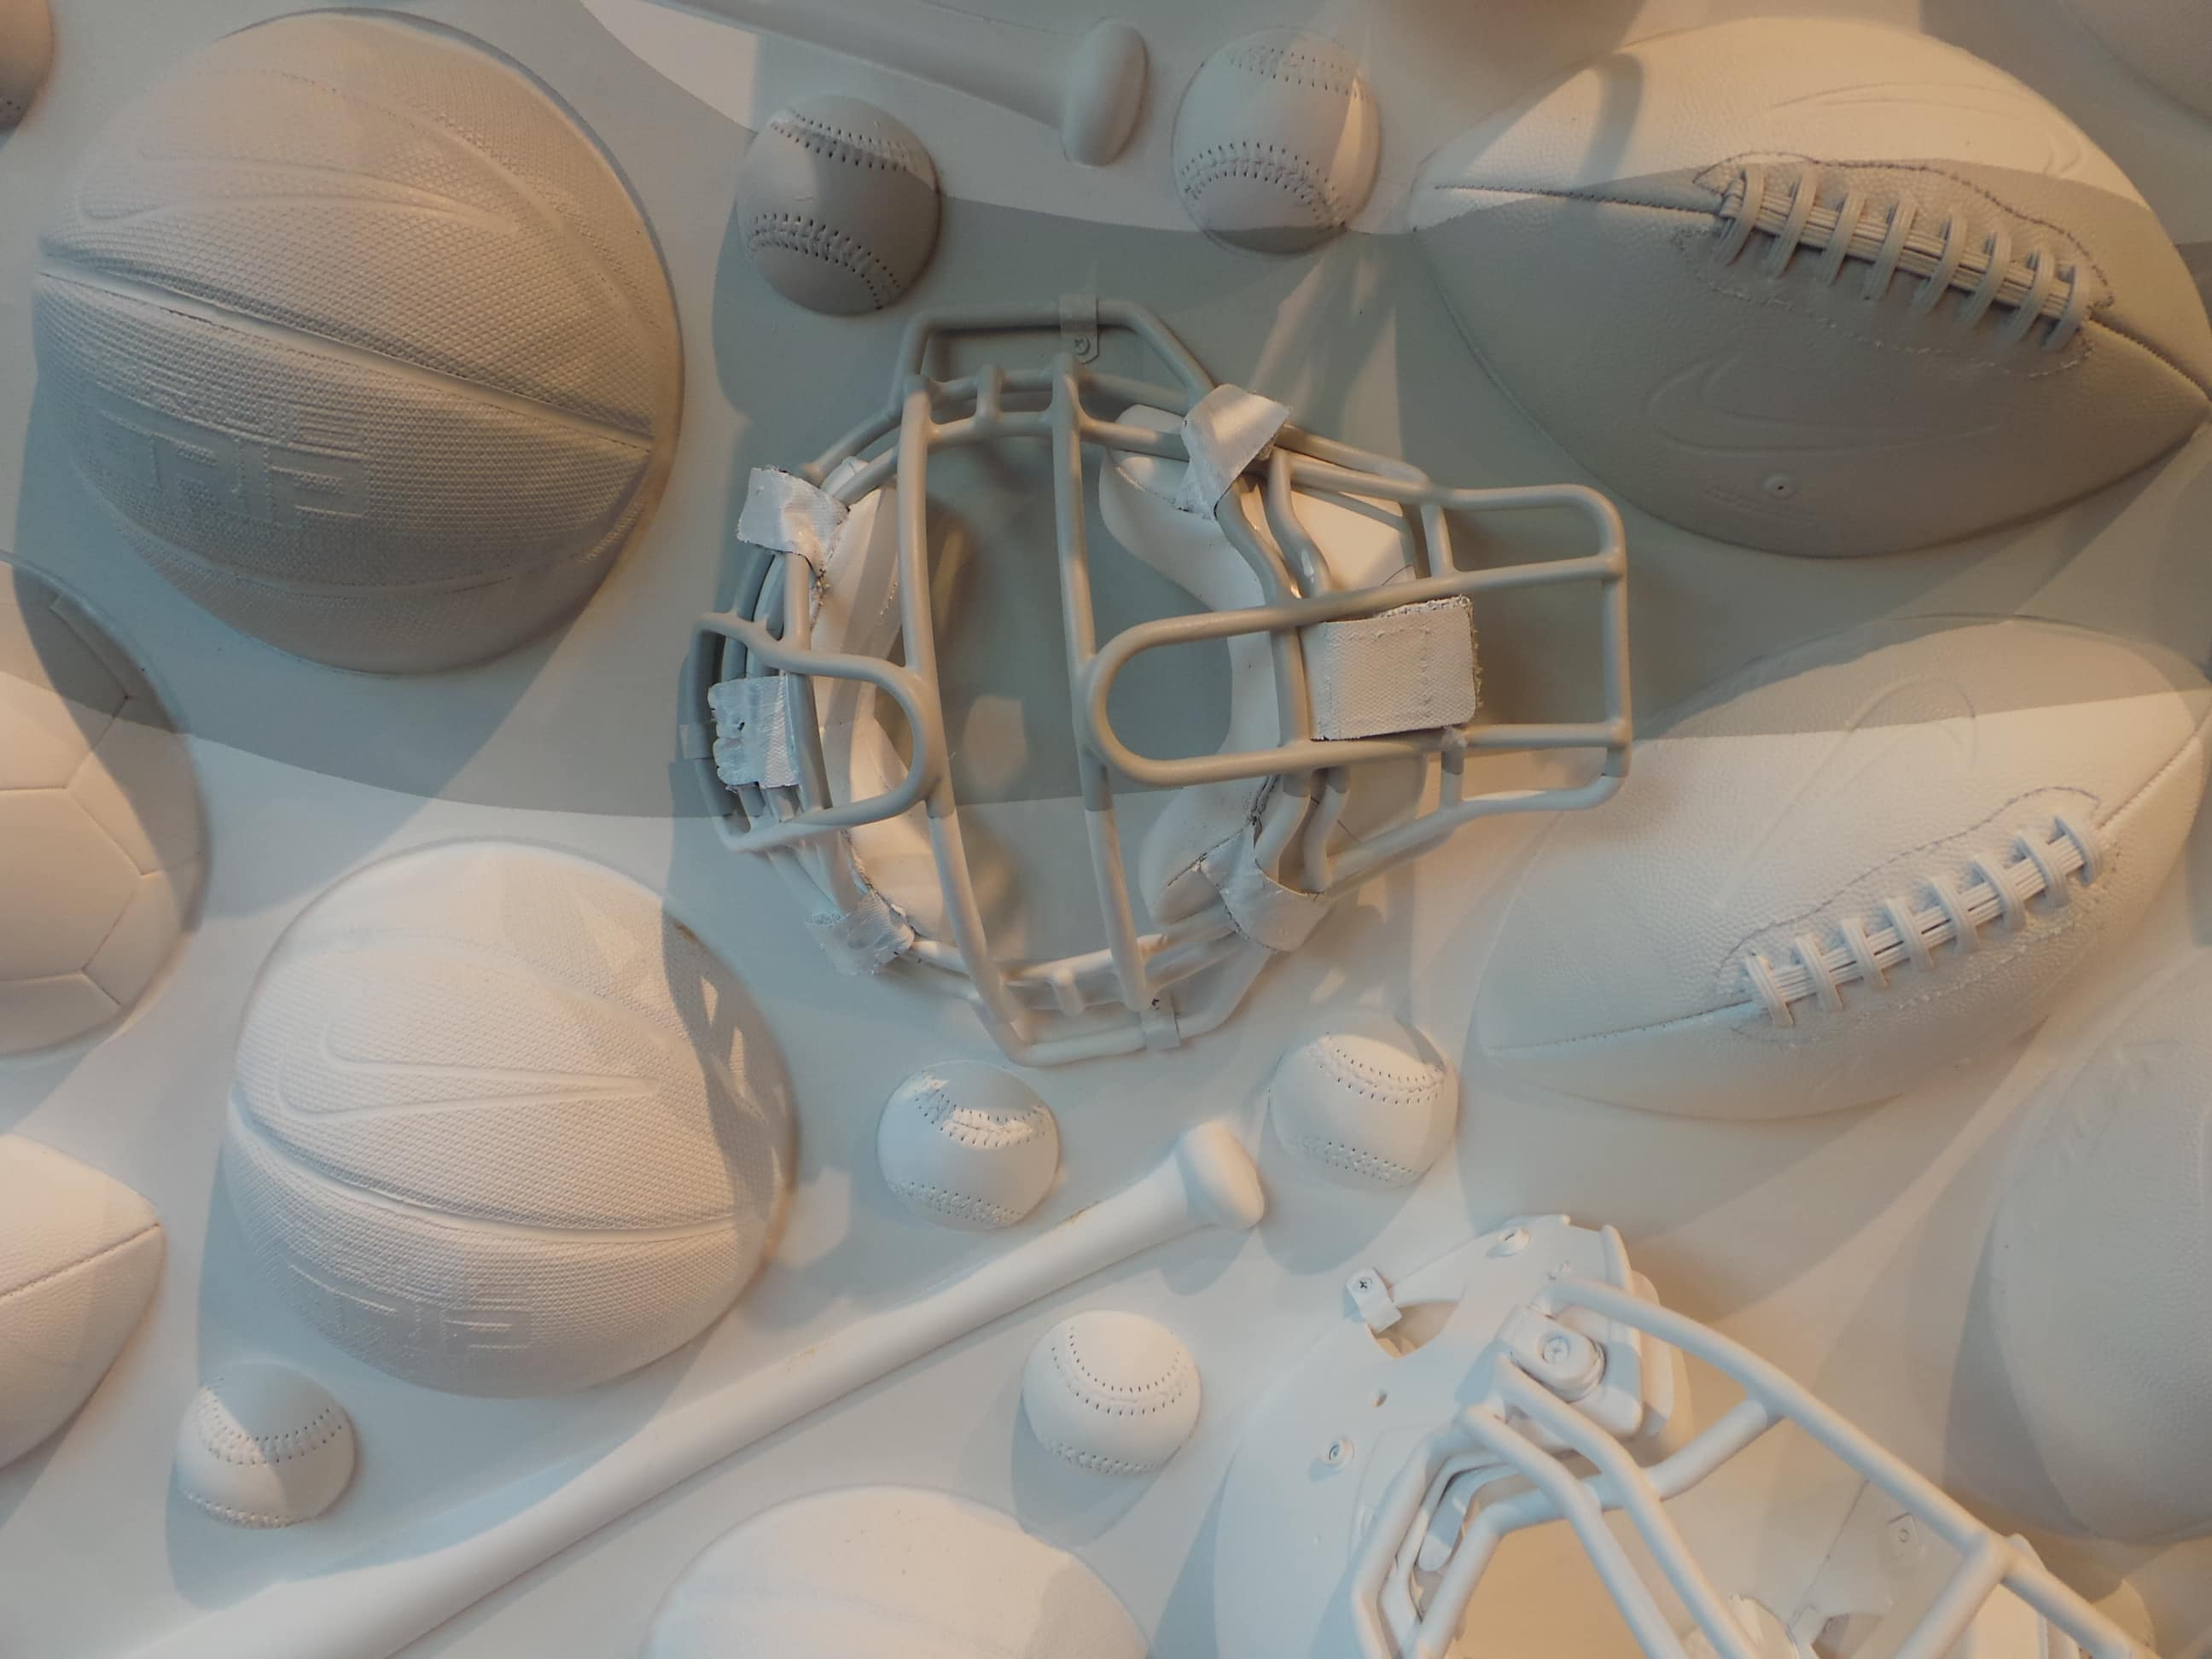 Nike Wall Ball Image 5